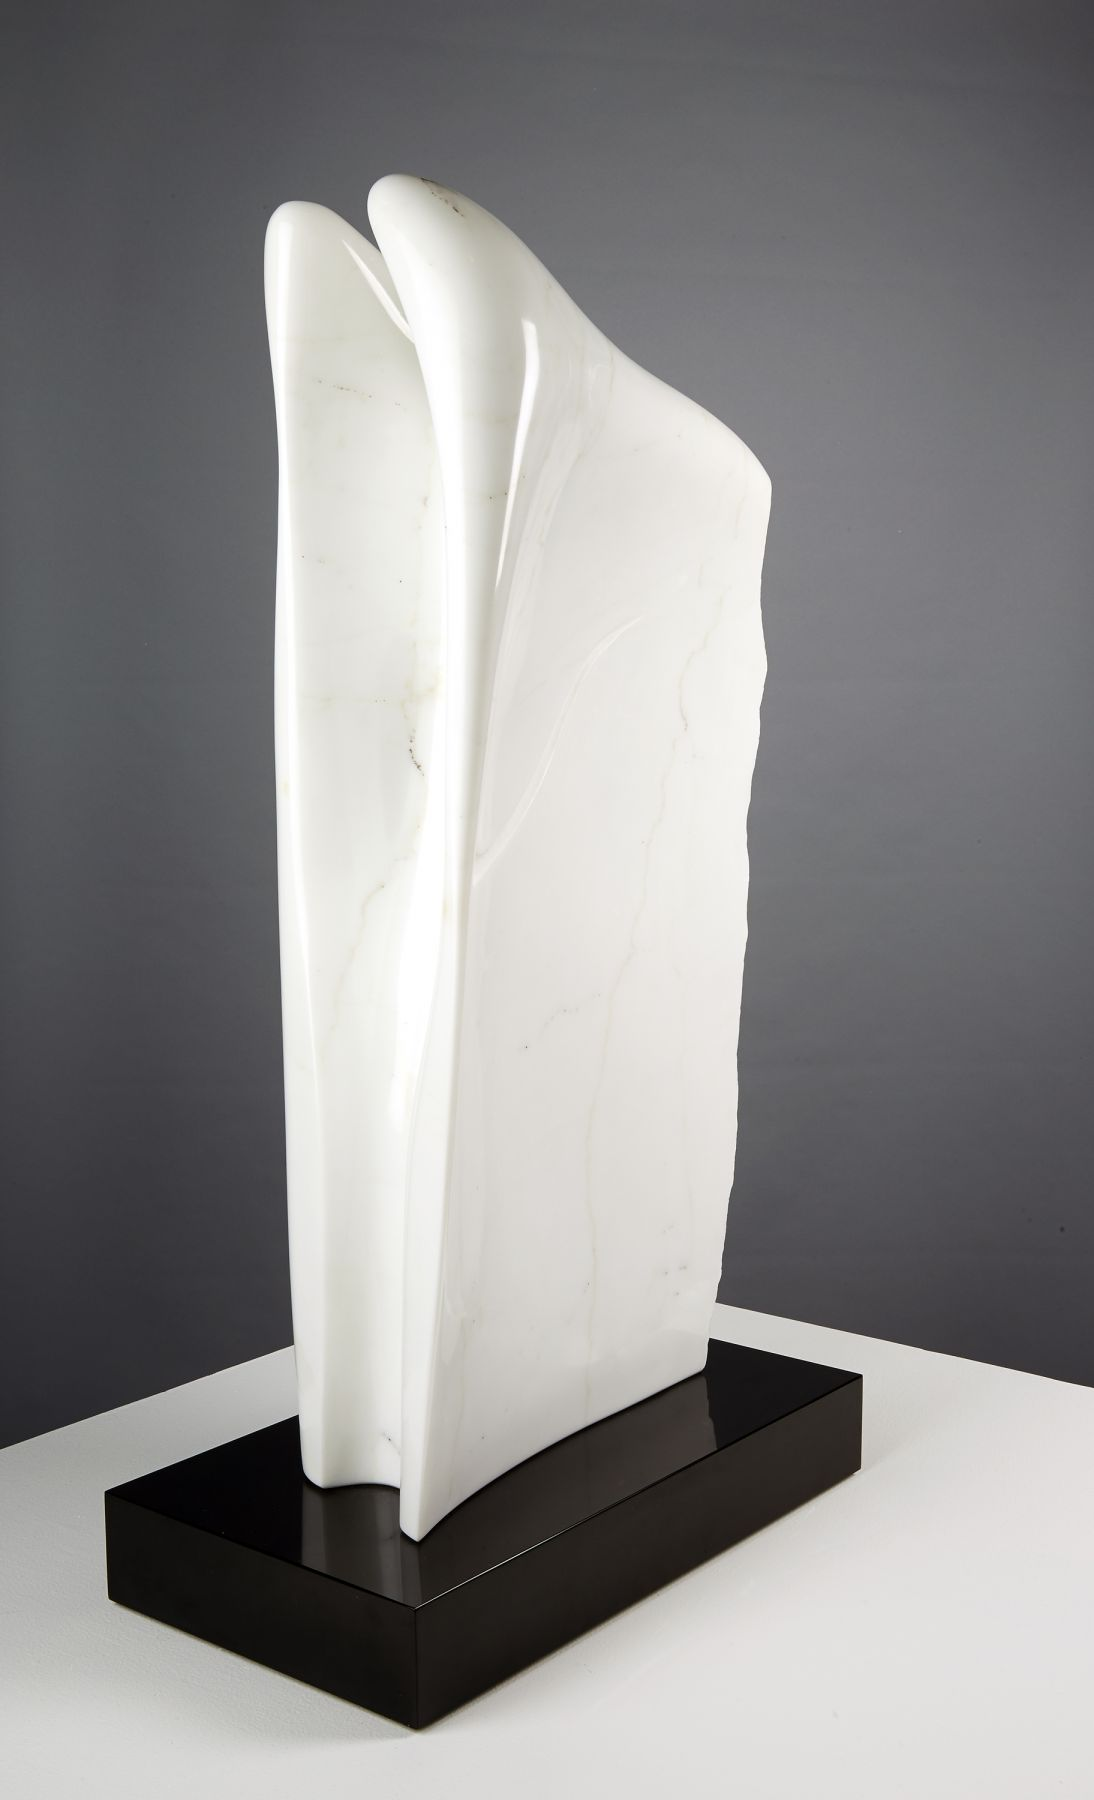 Charlie Kaplan, Intertwined, 2012, side view